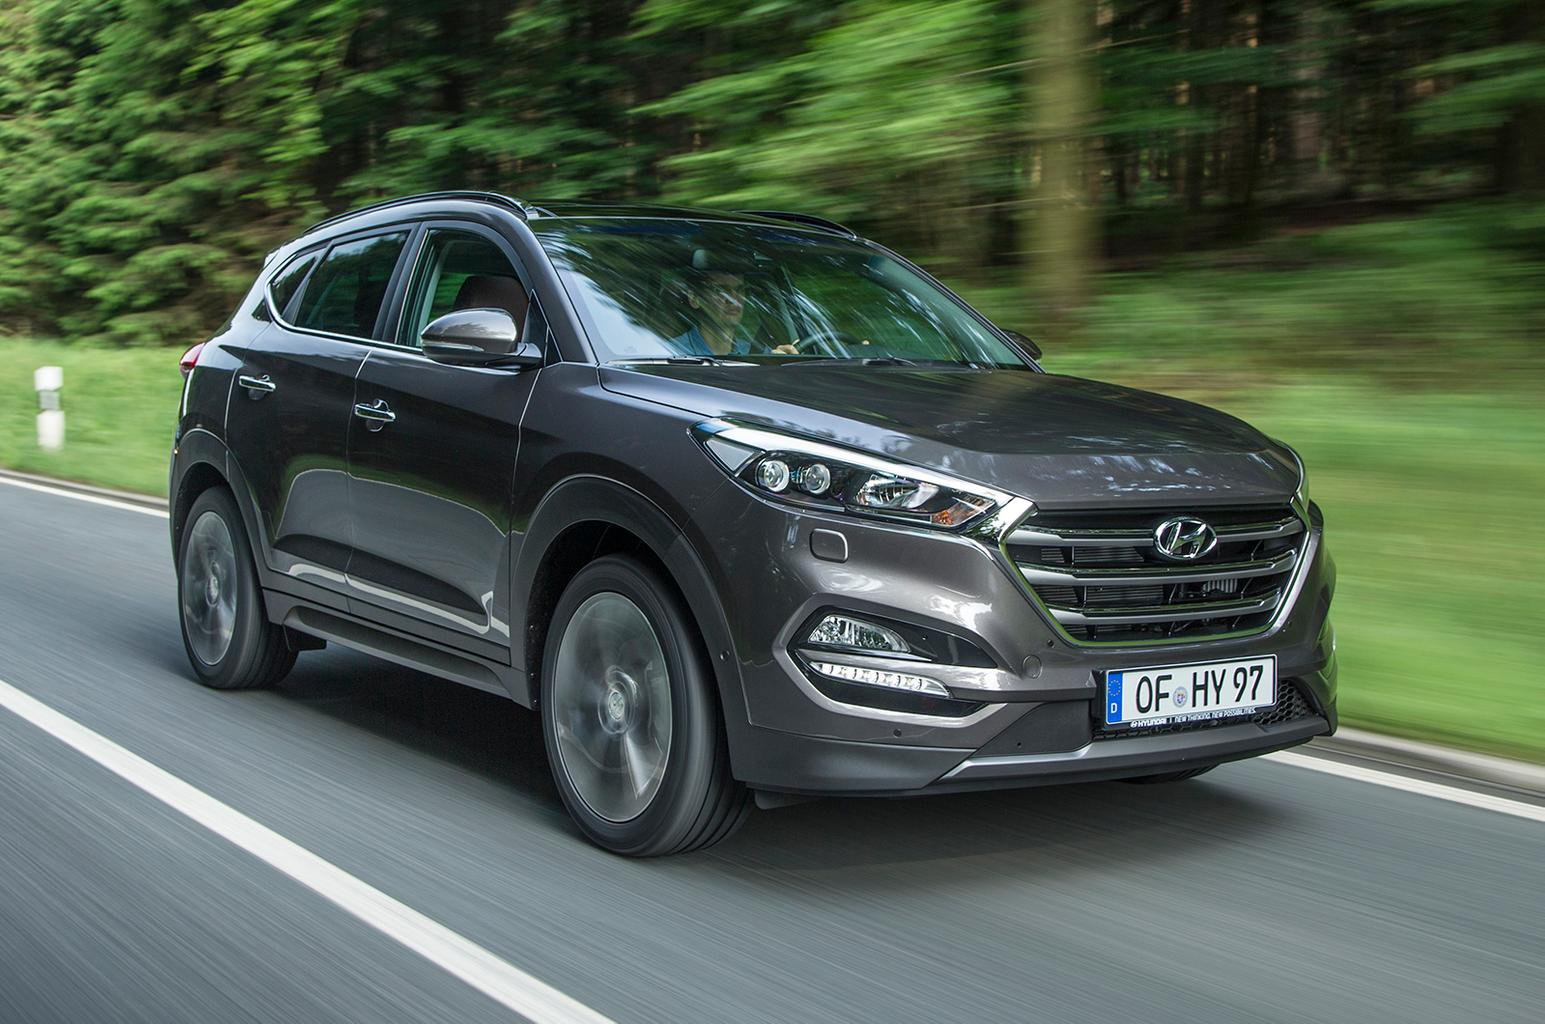 2015 Hyundai Tucson review